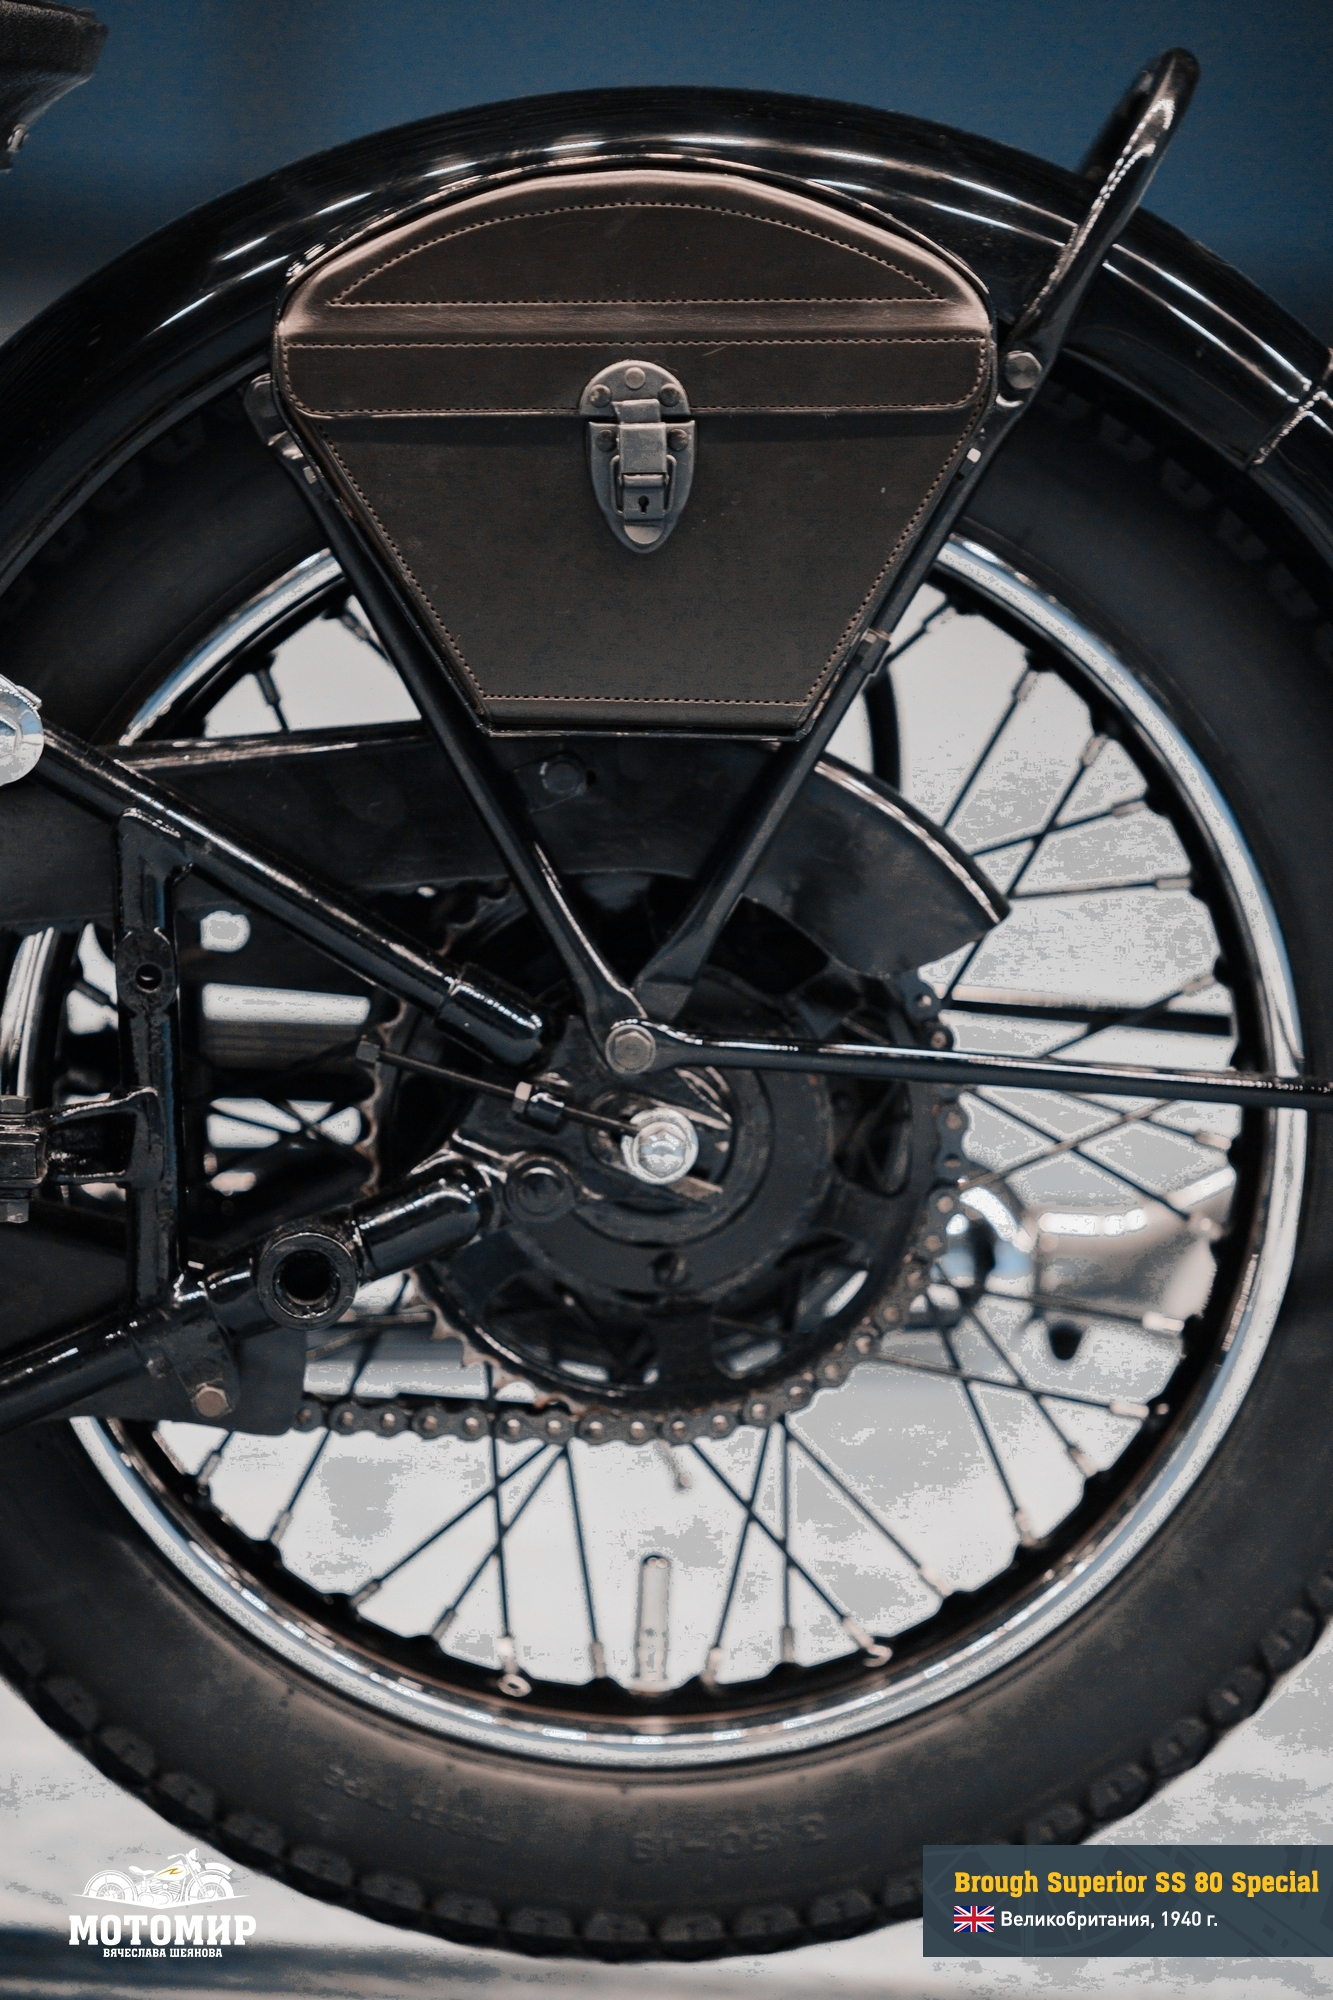 brough-superior-ss-80-201502-web-10